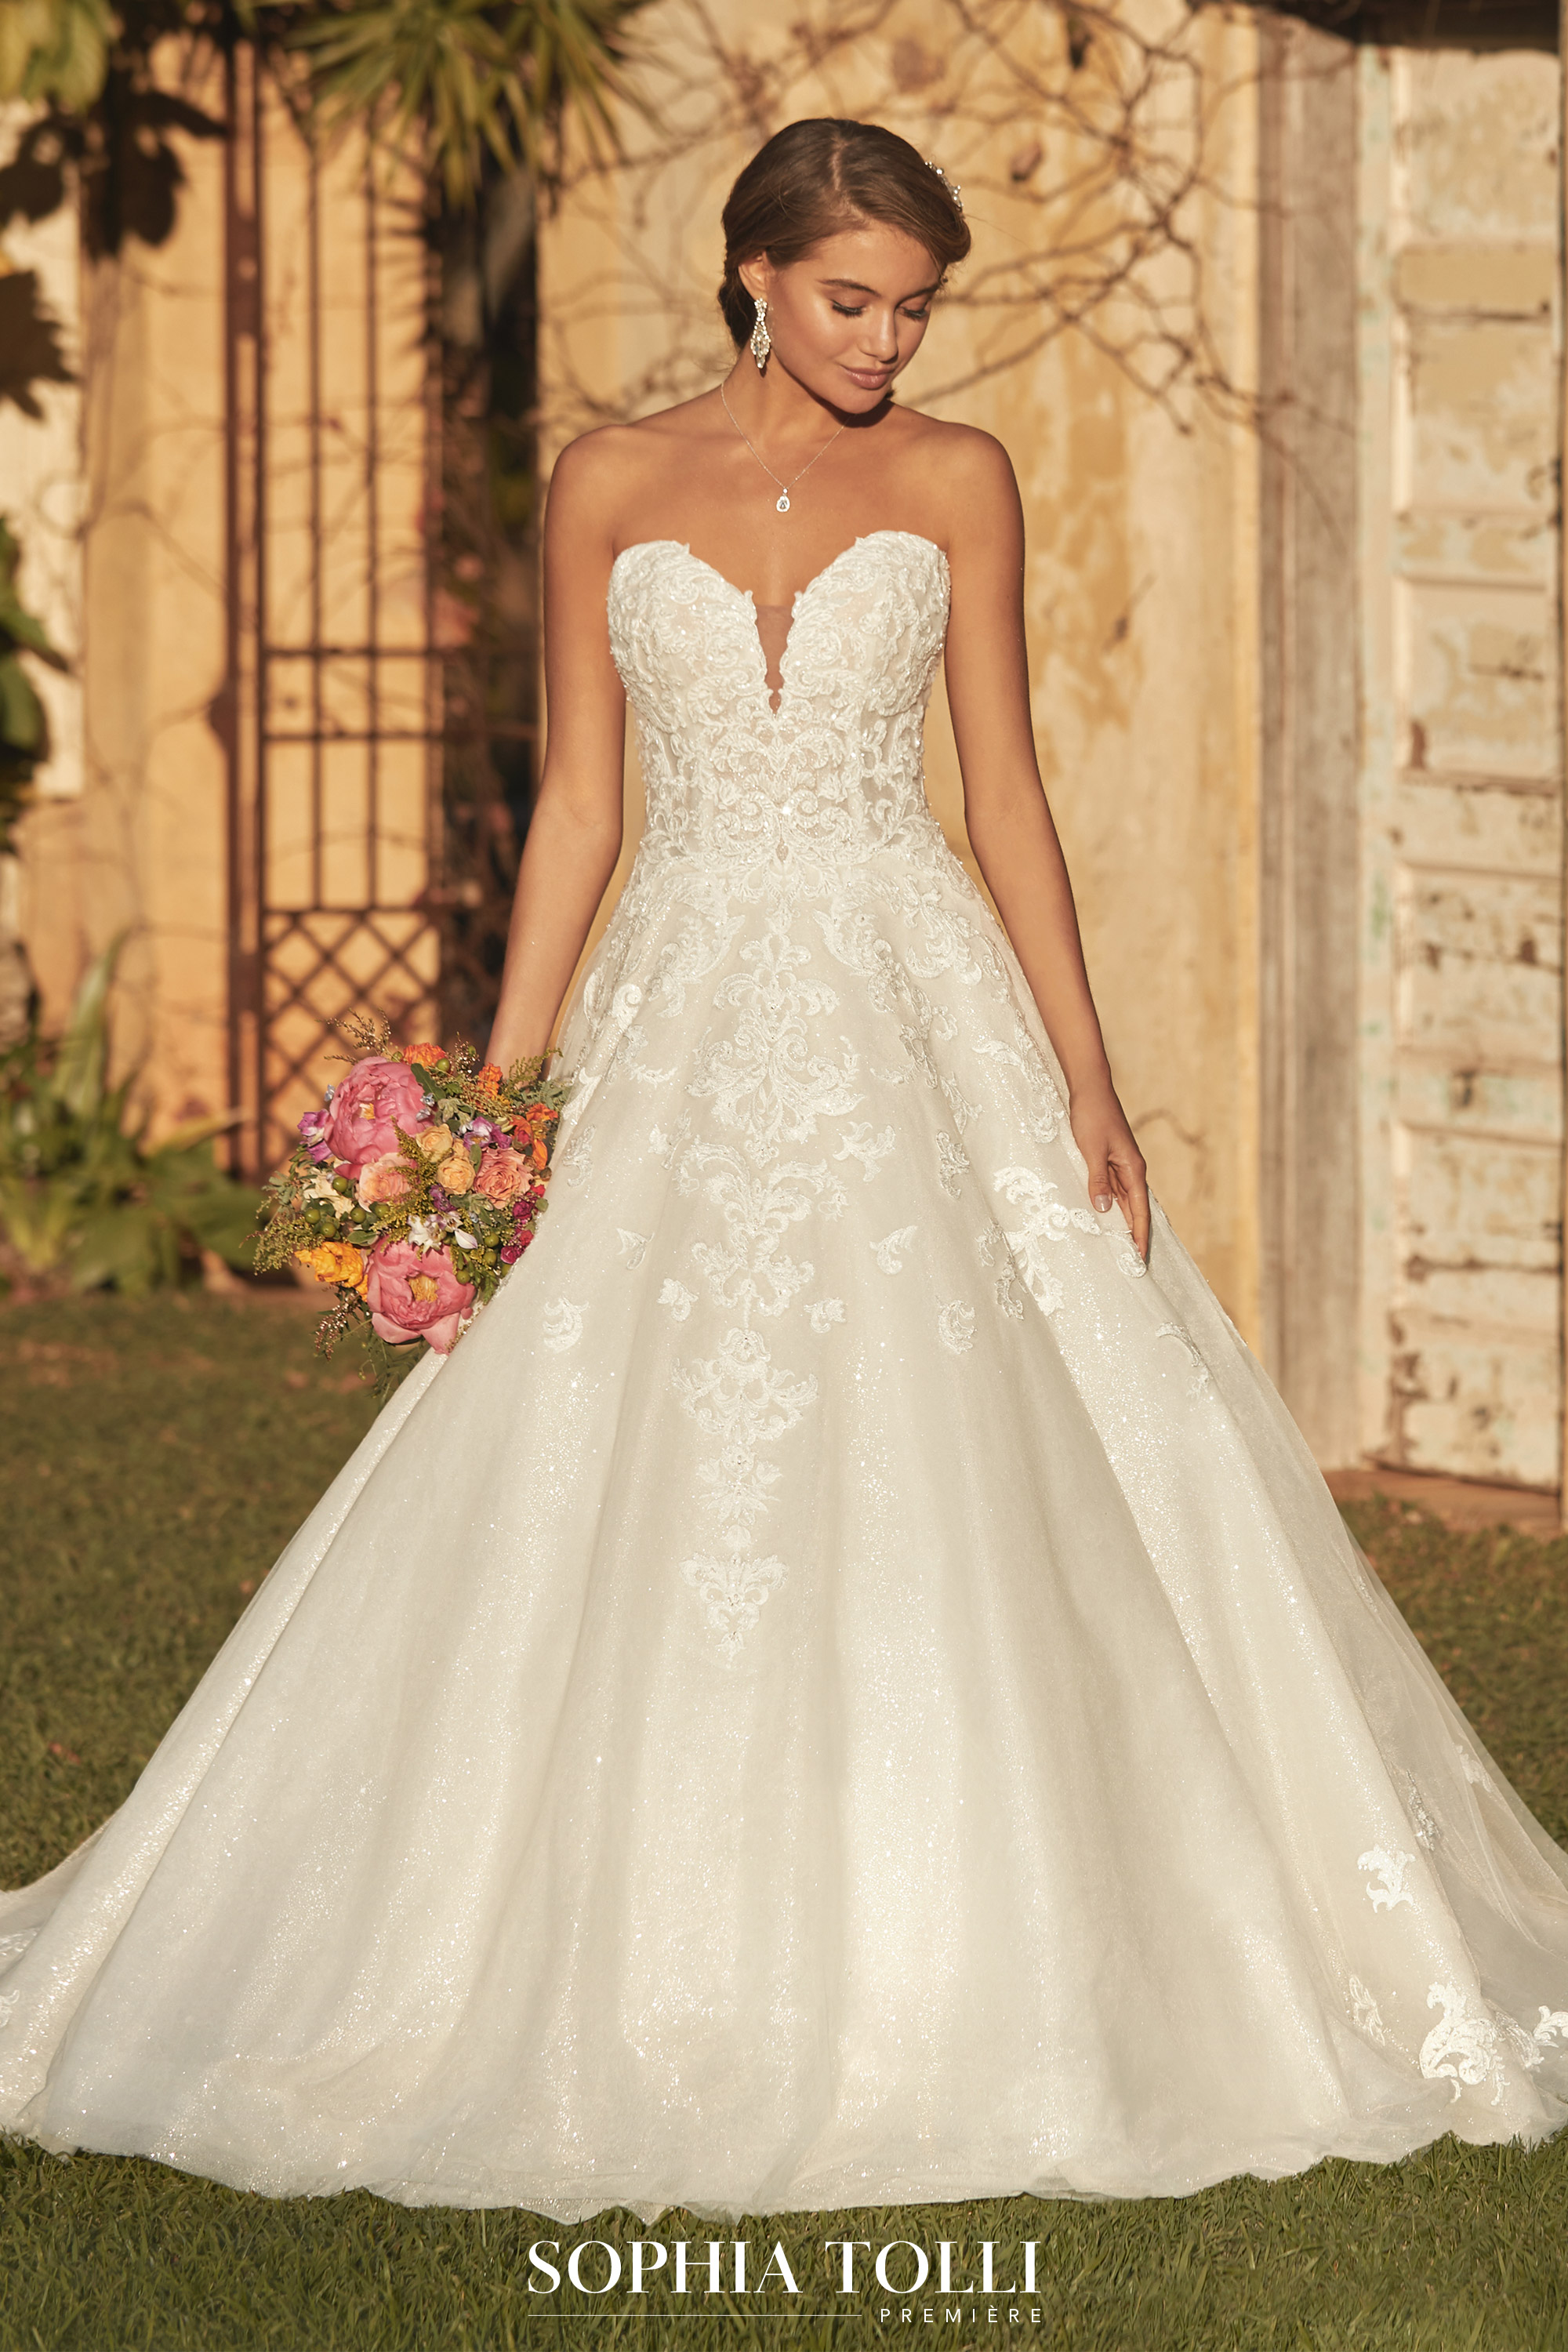 Sparkly Ballgown Wedding Dress With Whimsical Lace Sophia Tolli